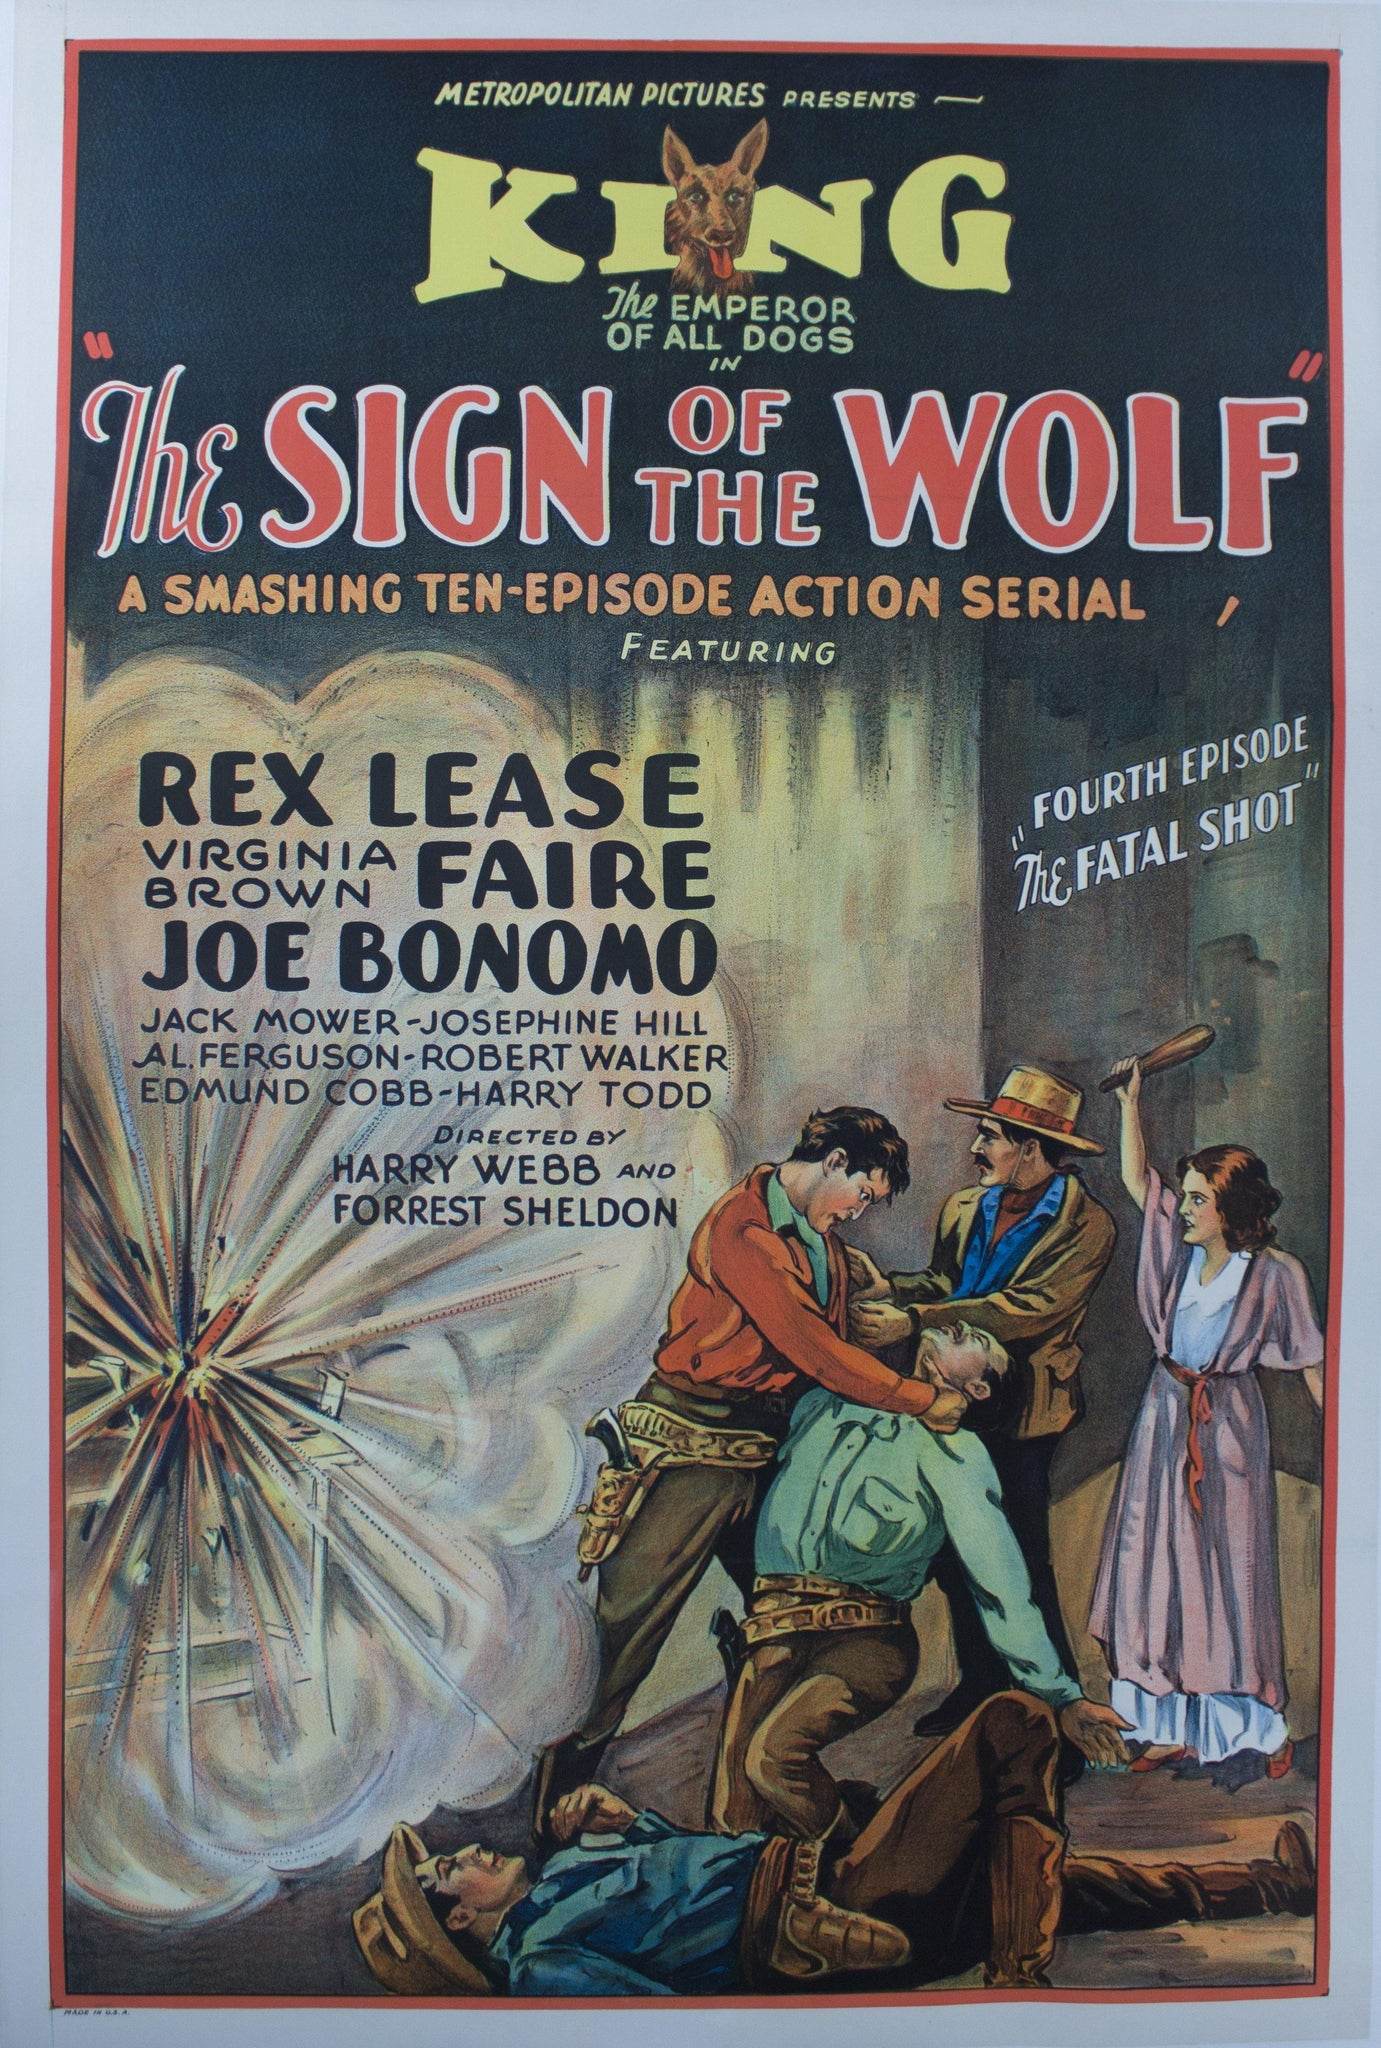 "1931 The Sign of the Wolf - Fourth Episode ""The Fatal Shot"""